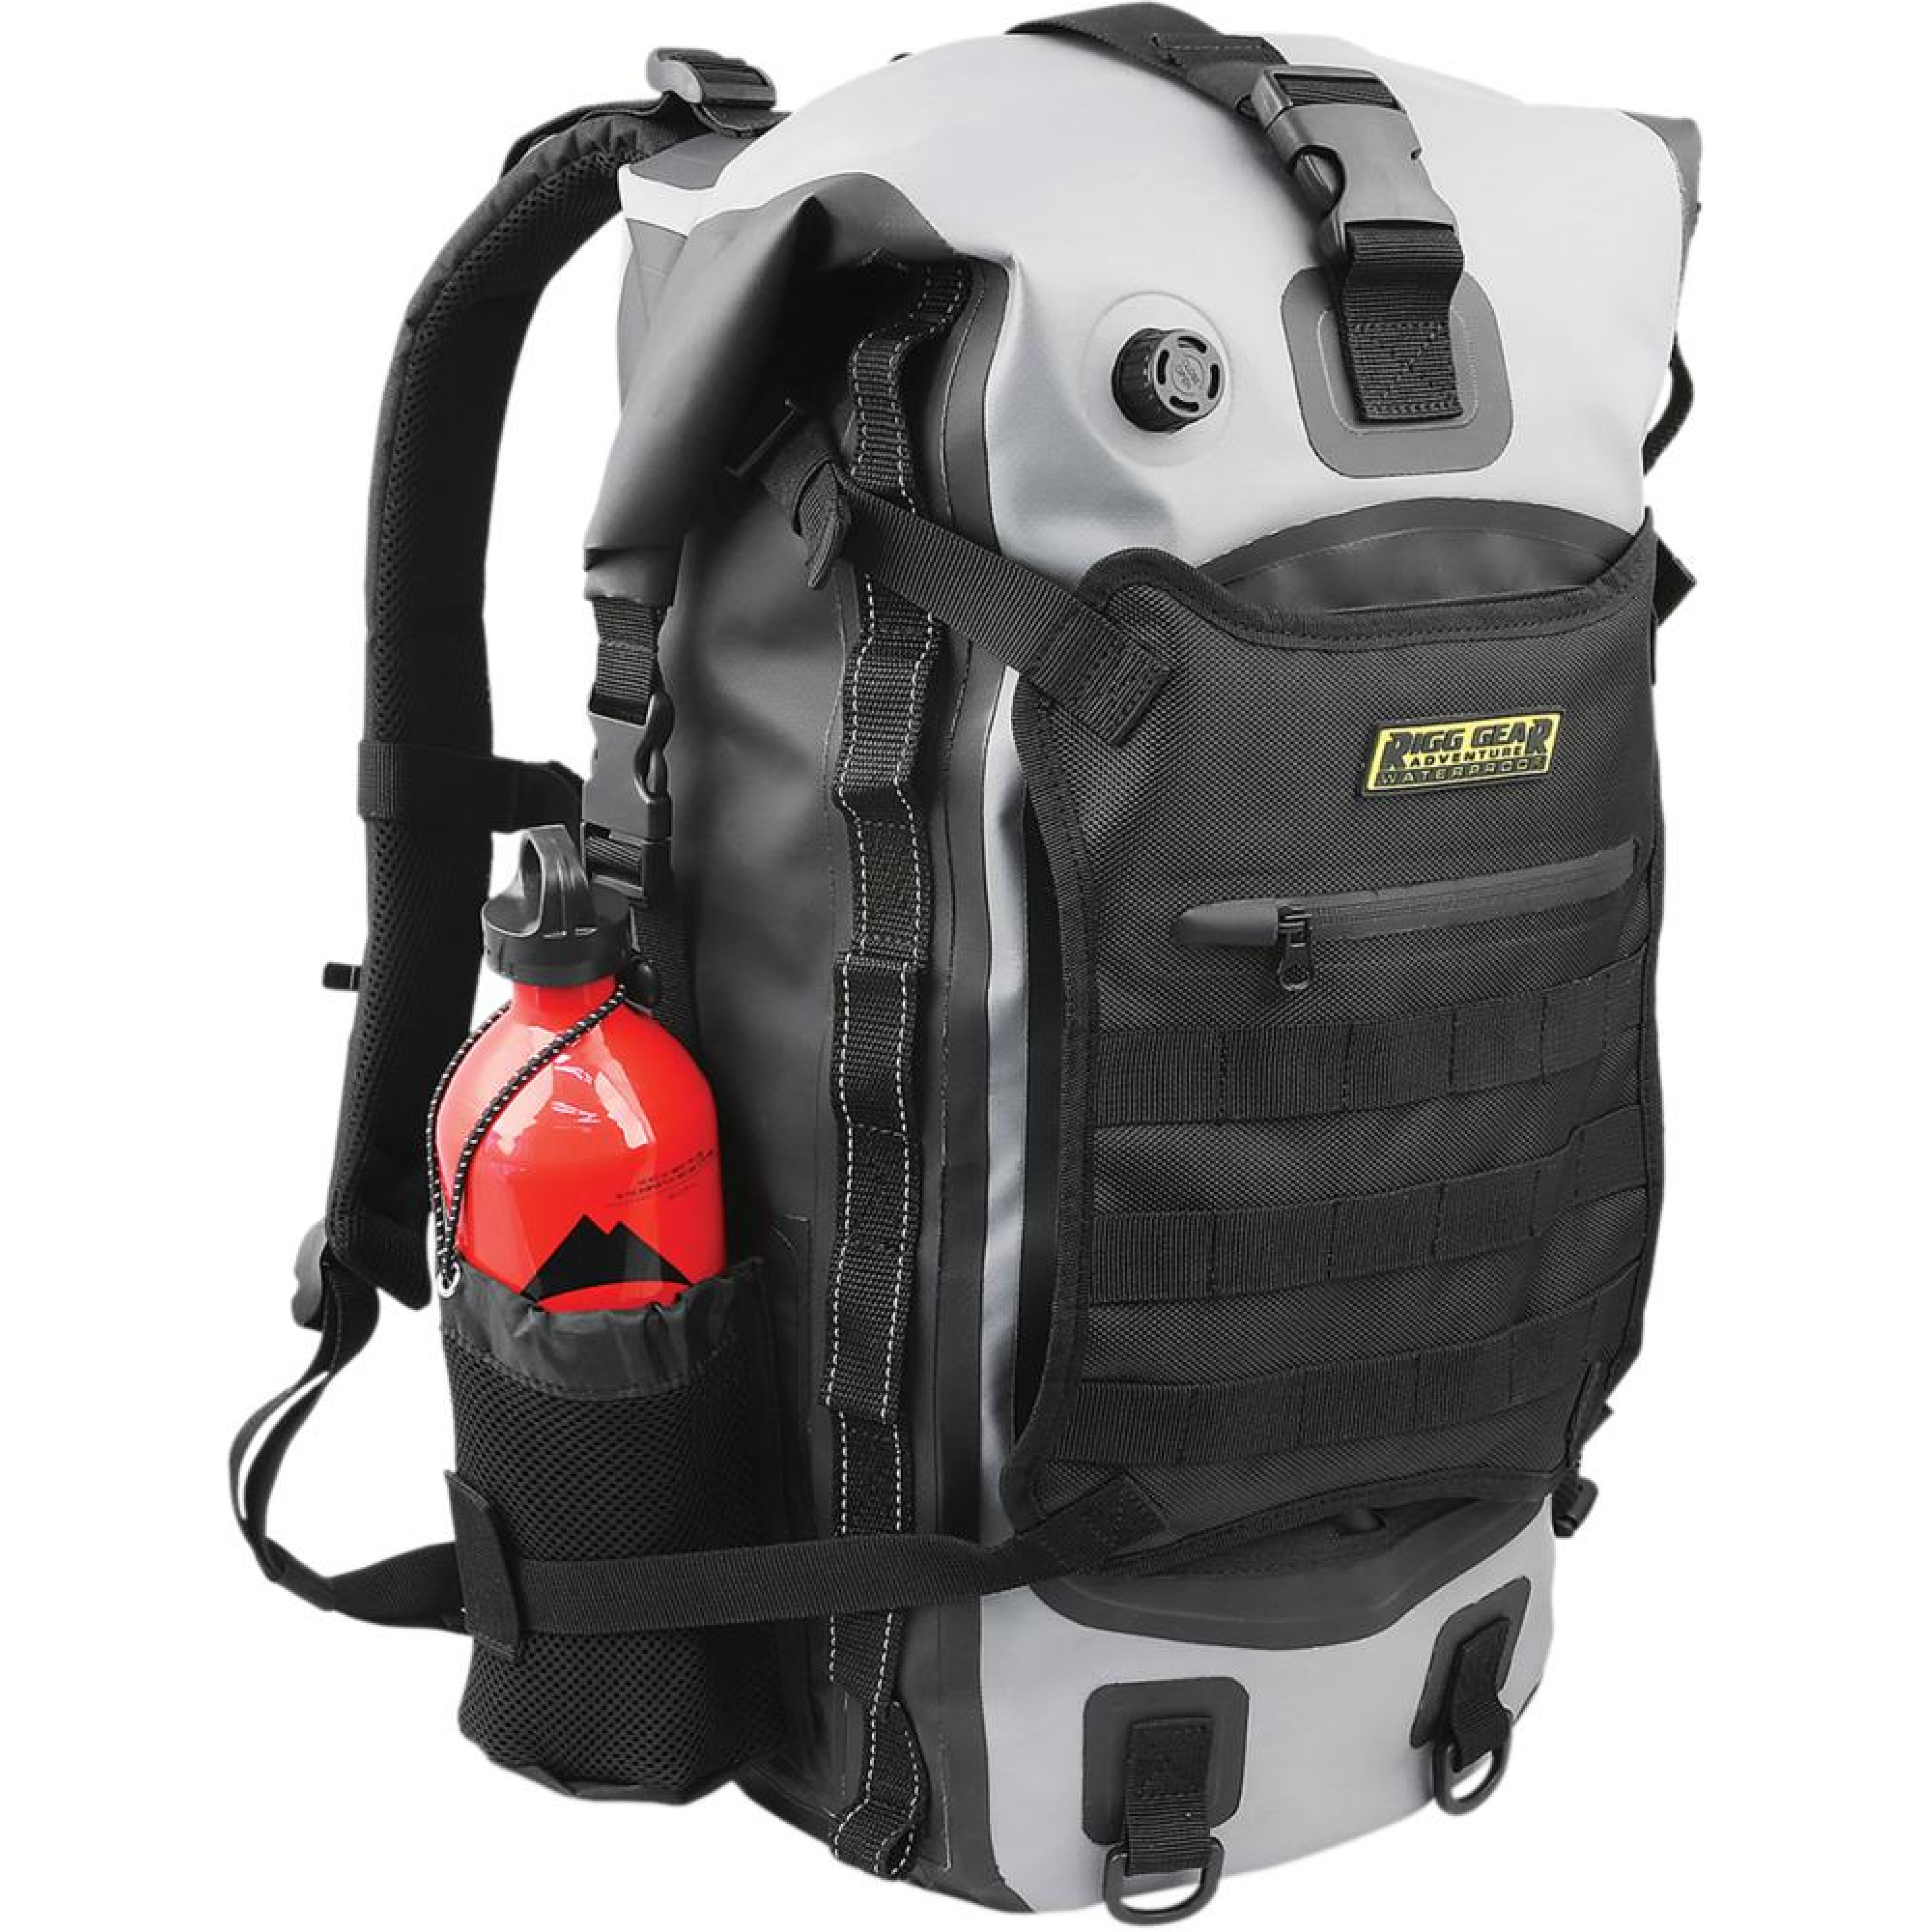 BACKPACK TAILPACK ADV 40L